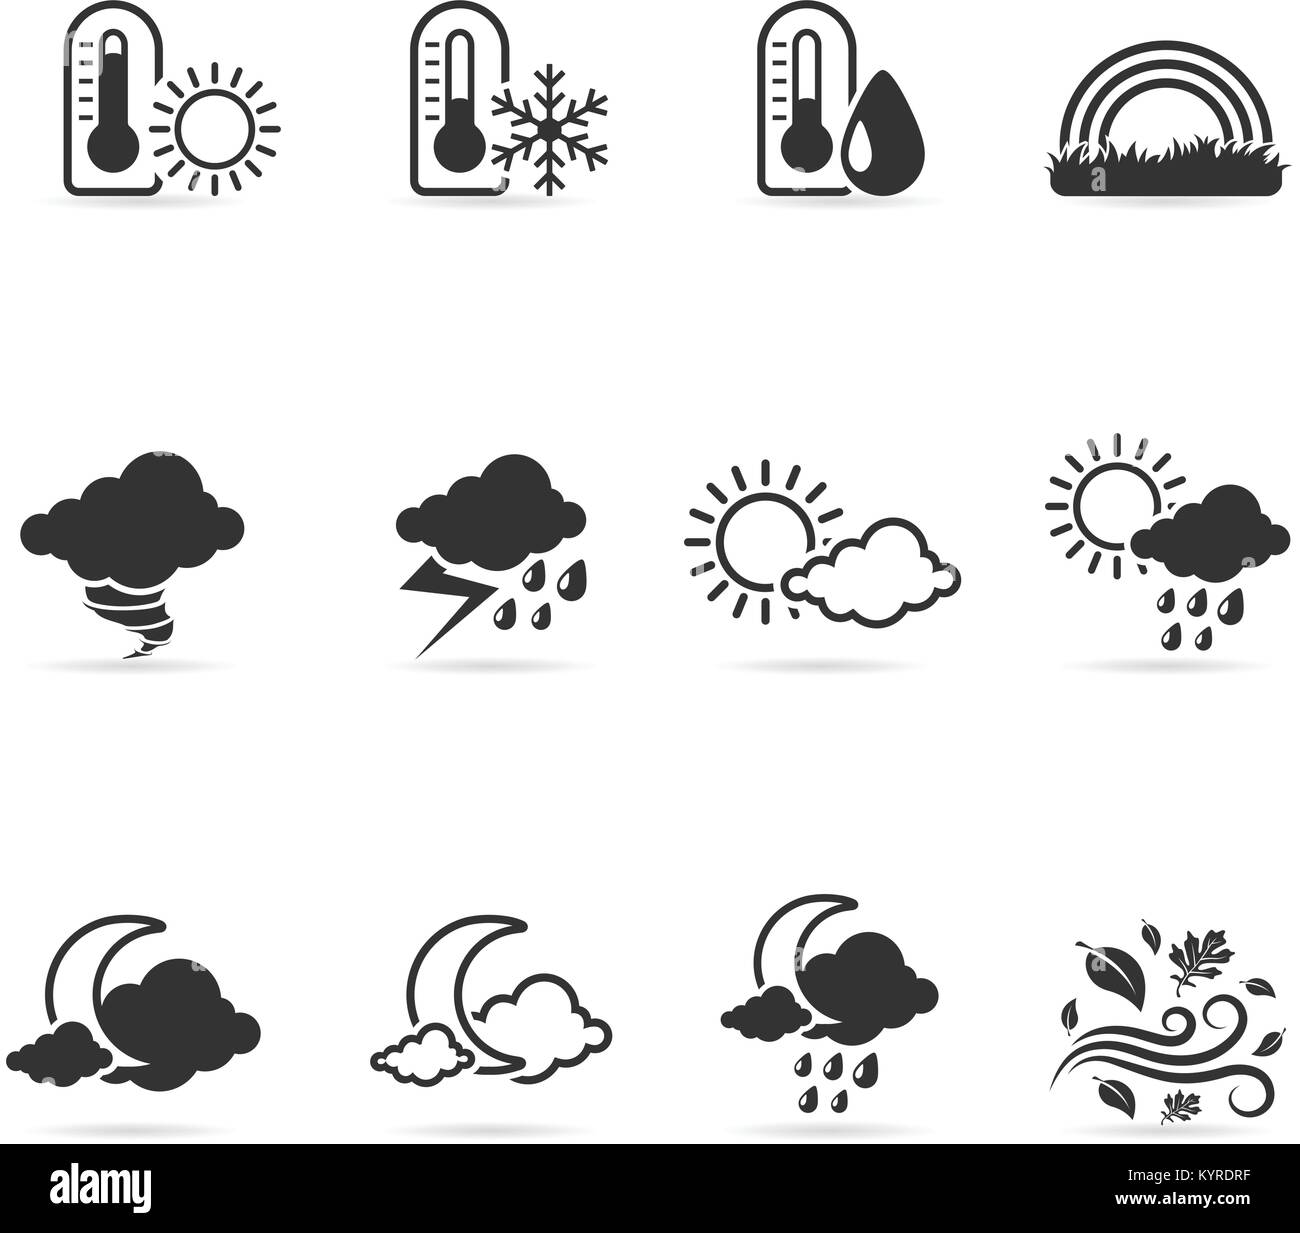 More weather icon set in single color. - Stock Image